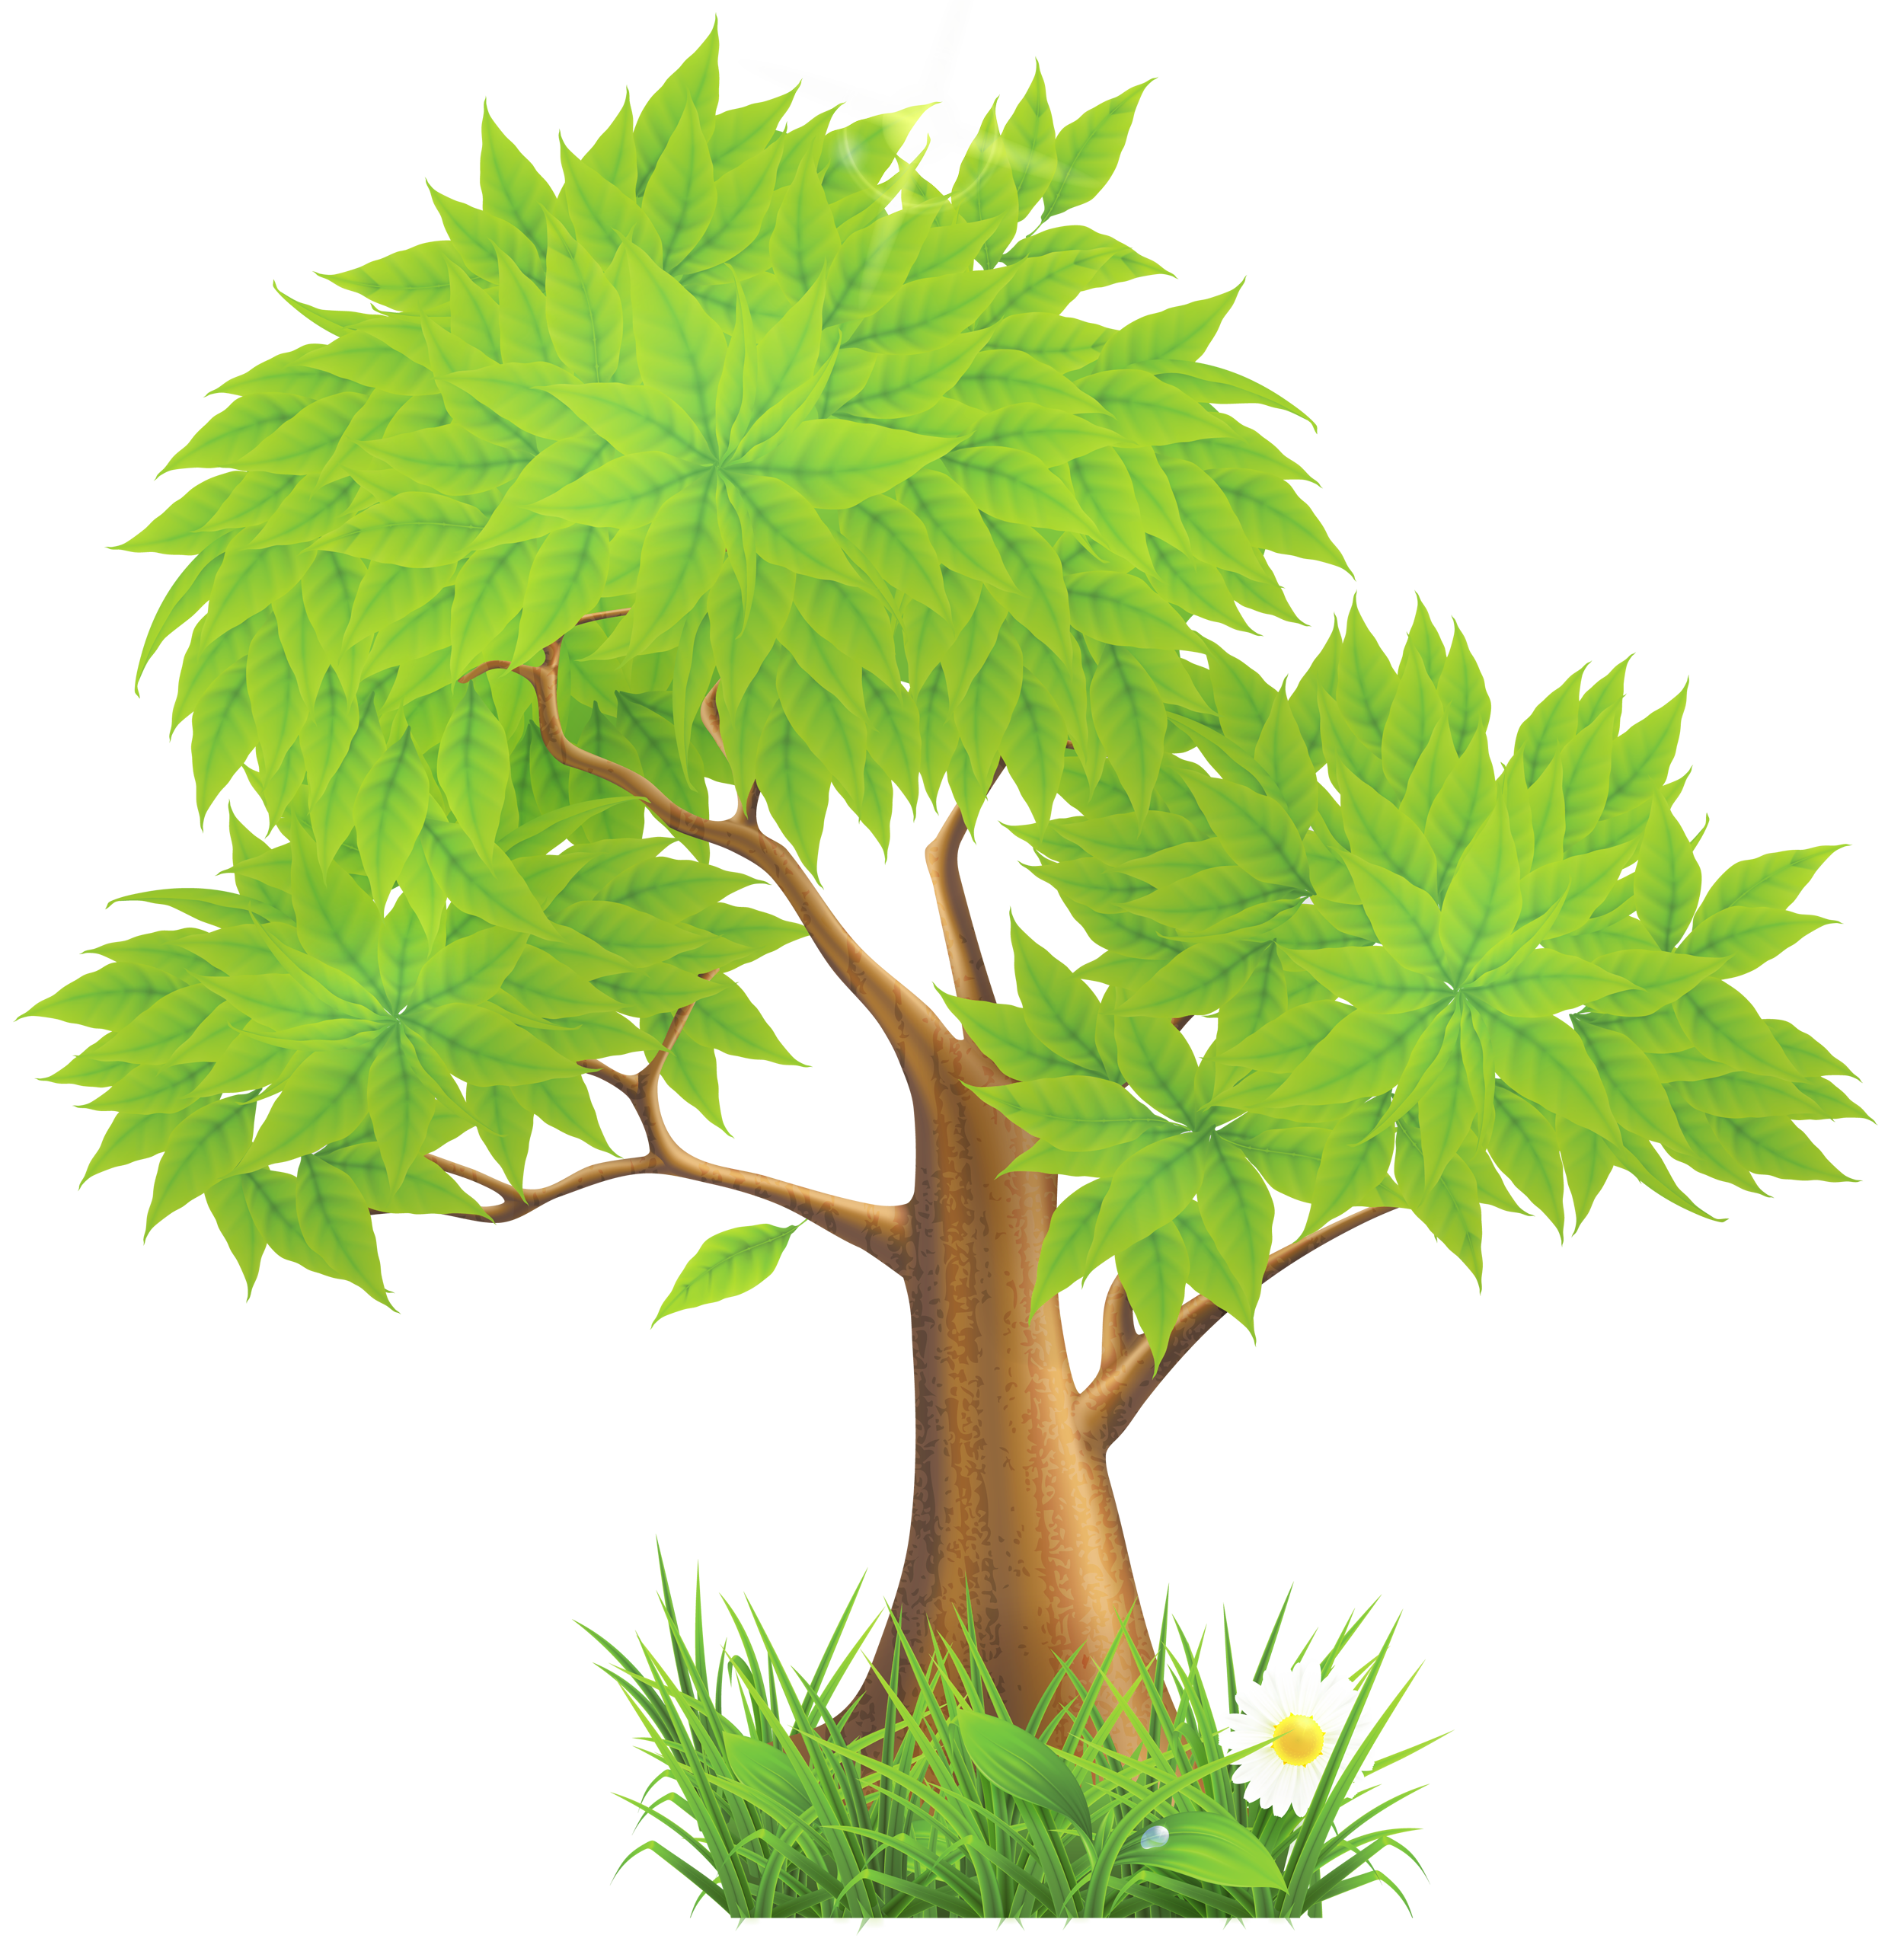 Tree clipart landscape. Pine png pinterest pinetreeclipartpng